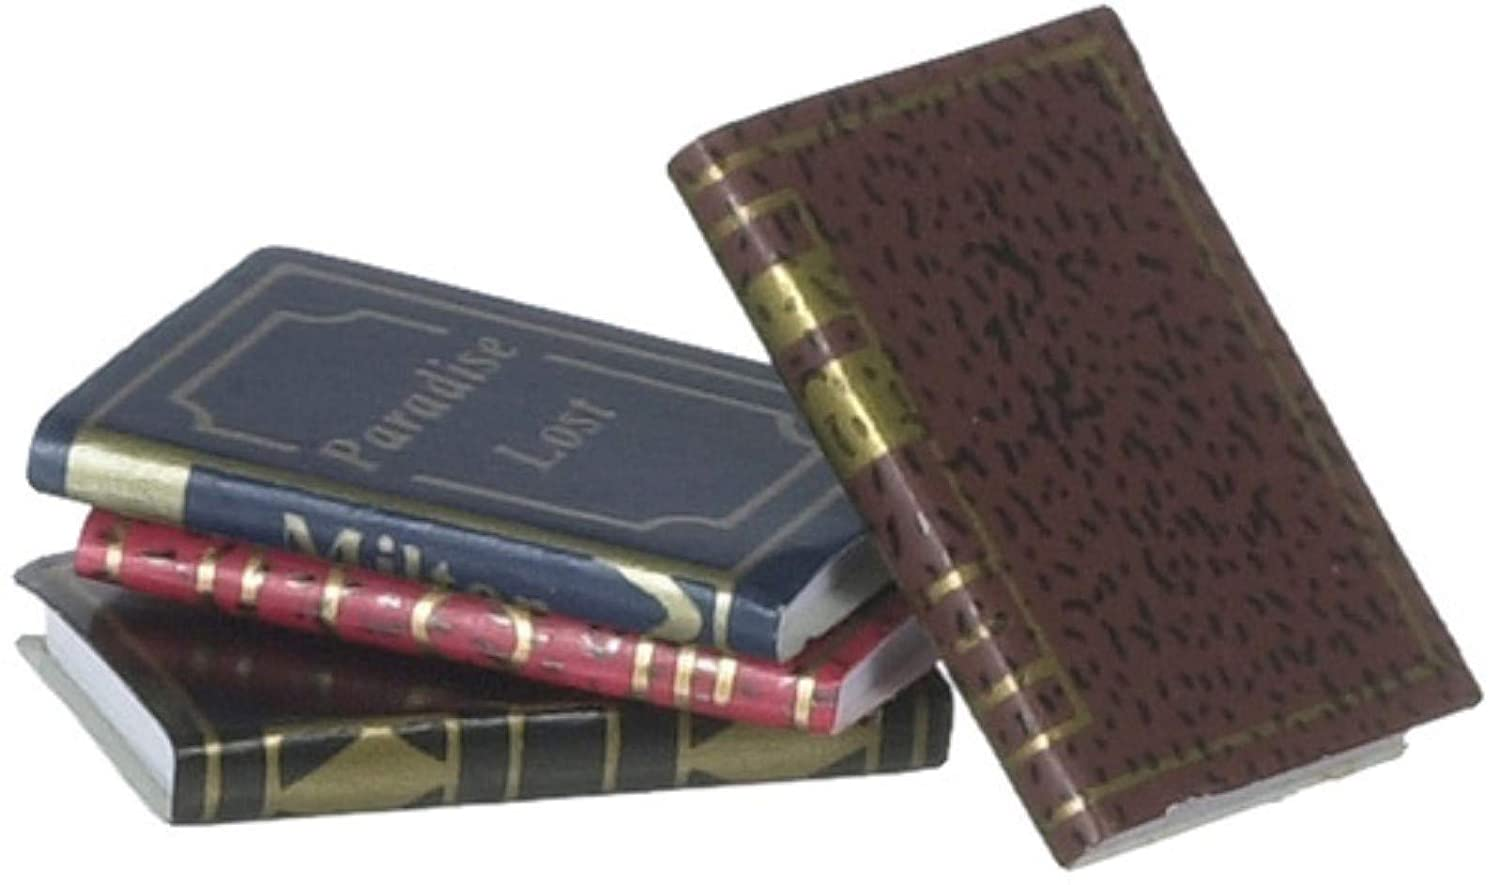 Dollhouse Miniature Set of 4 Gold Embossed Books